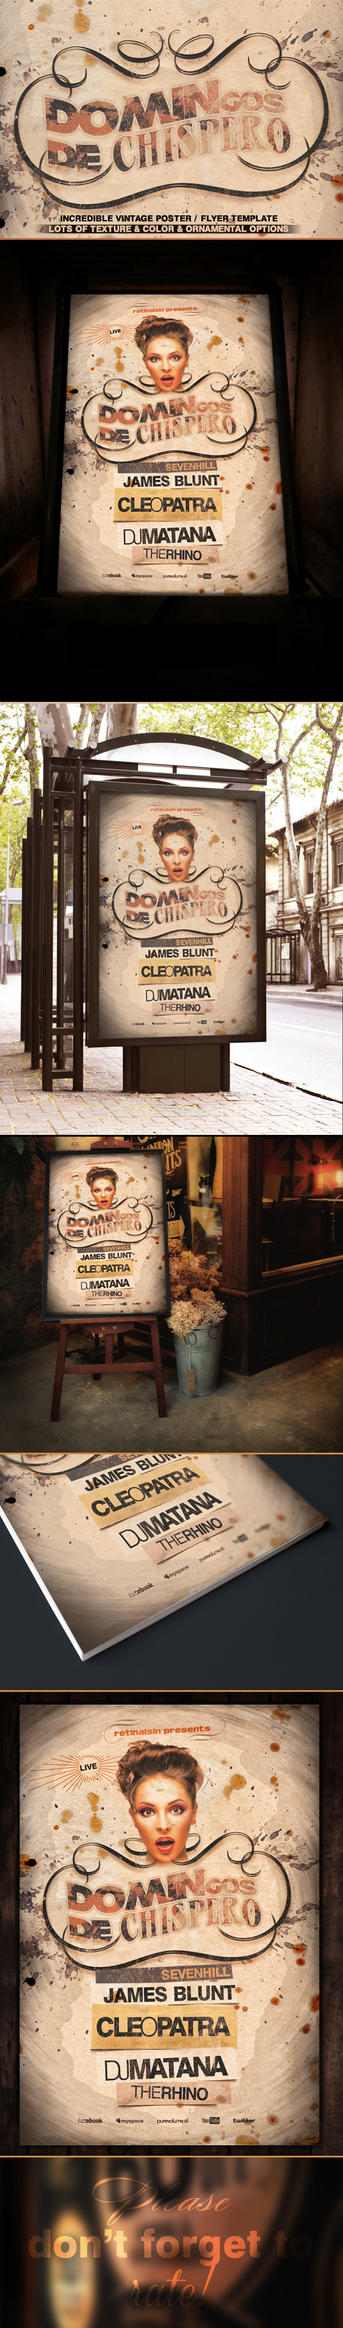 Vintage Poster / Flyer Template by retinathemes